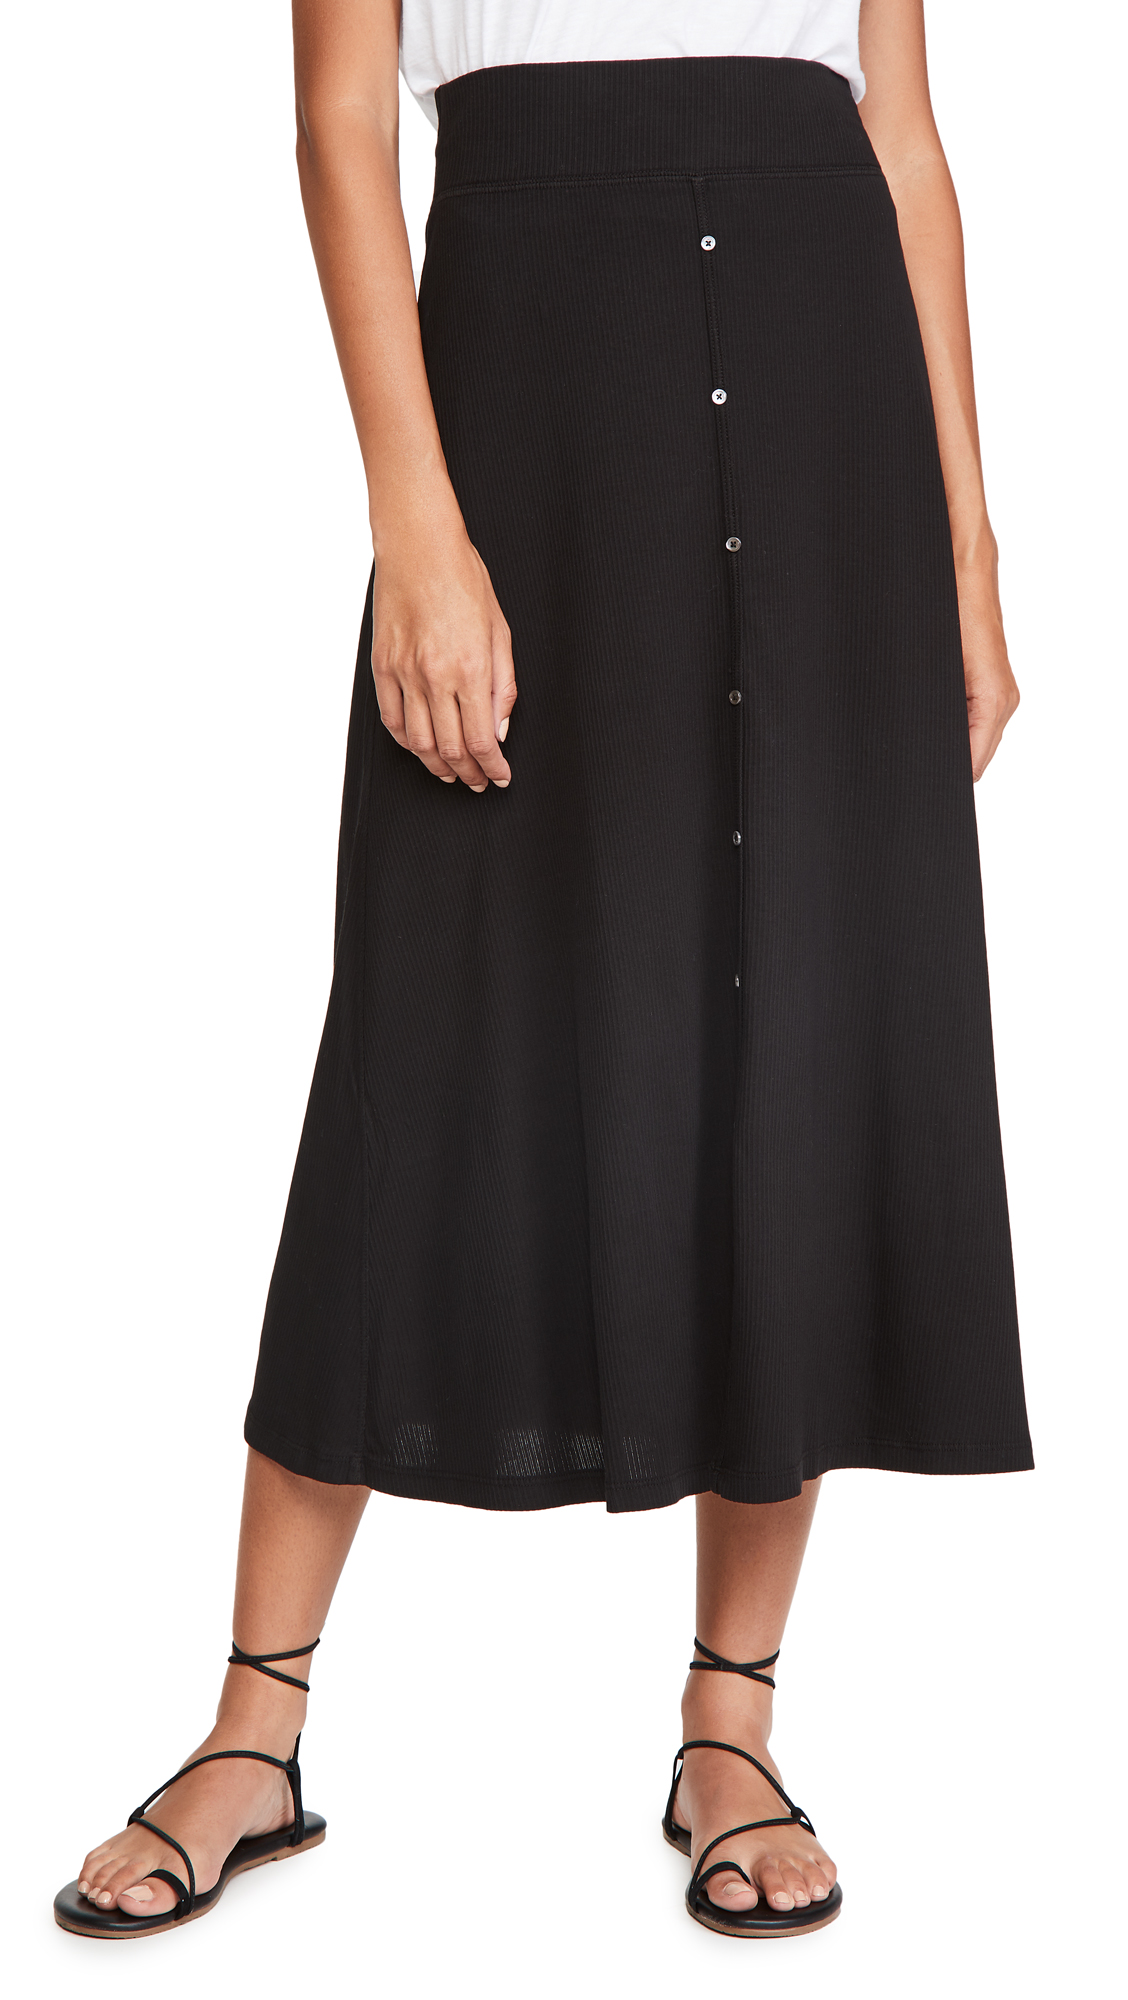 James Perse Button Front Skirt